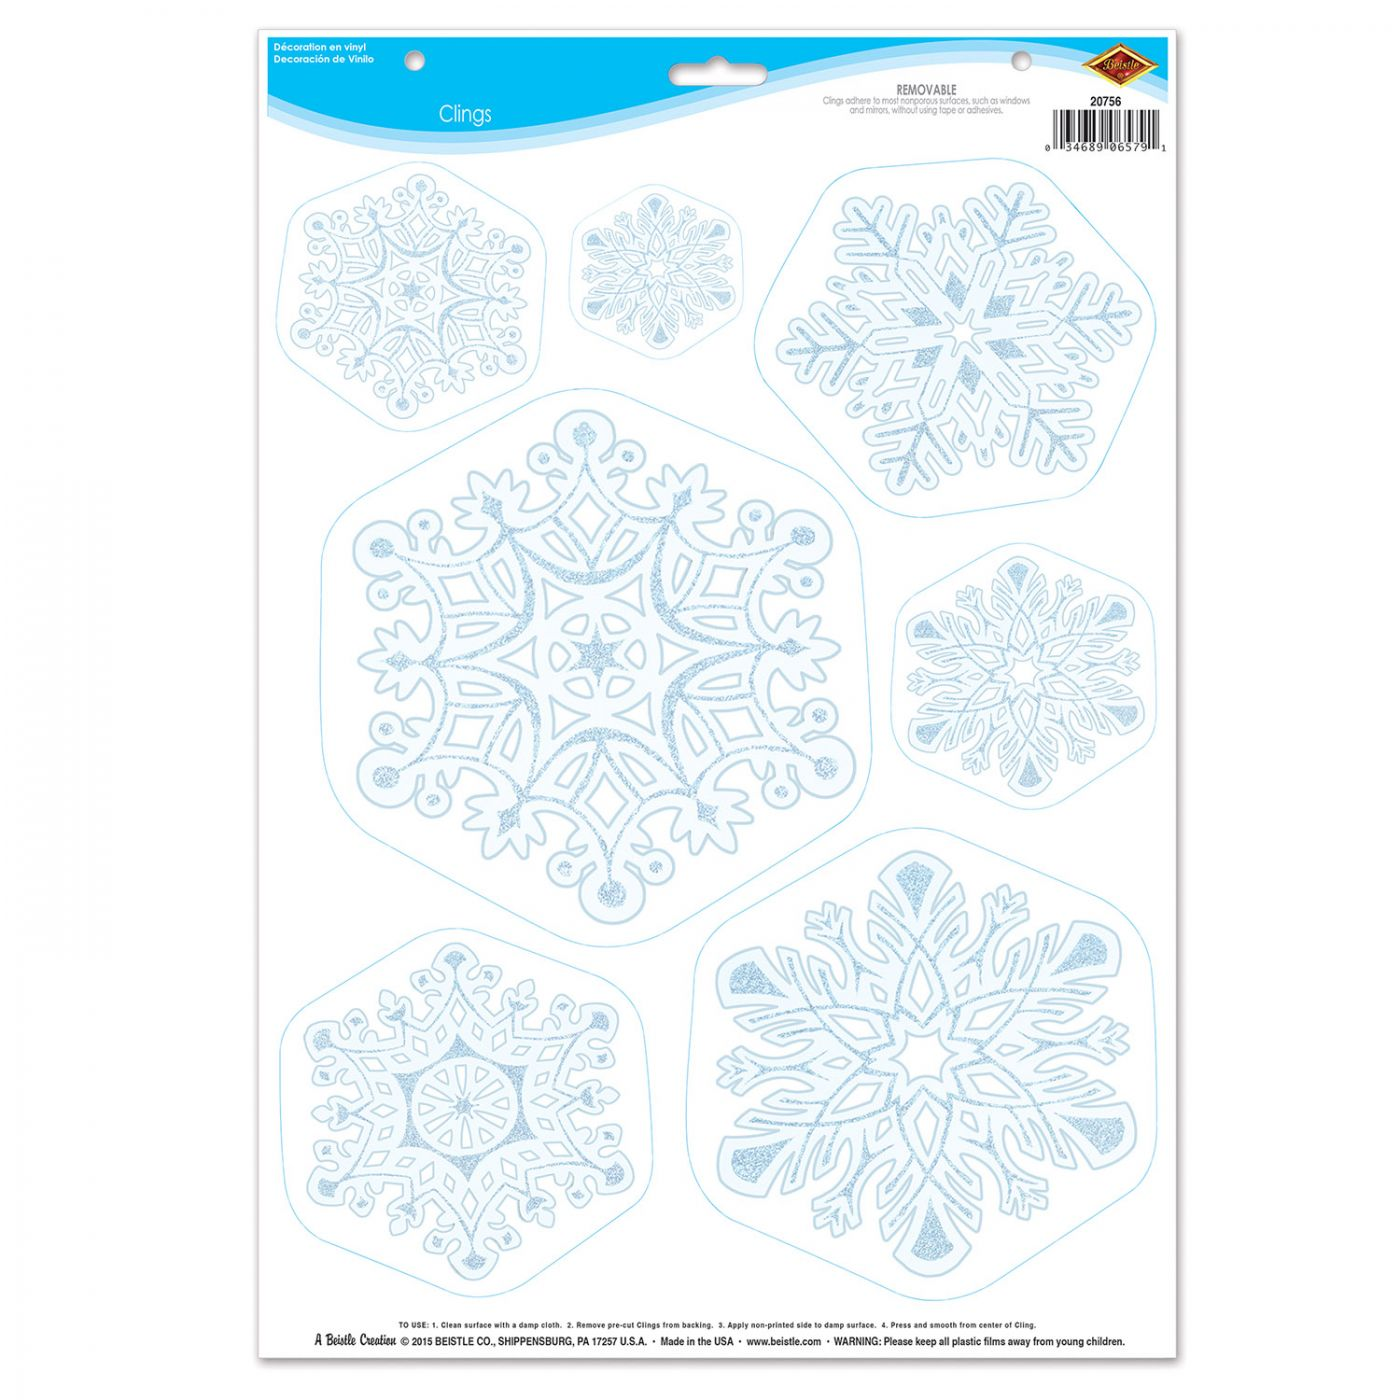 Snowflake Clings image